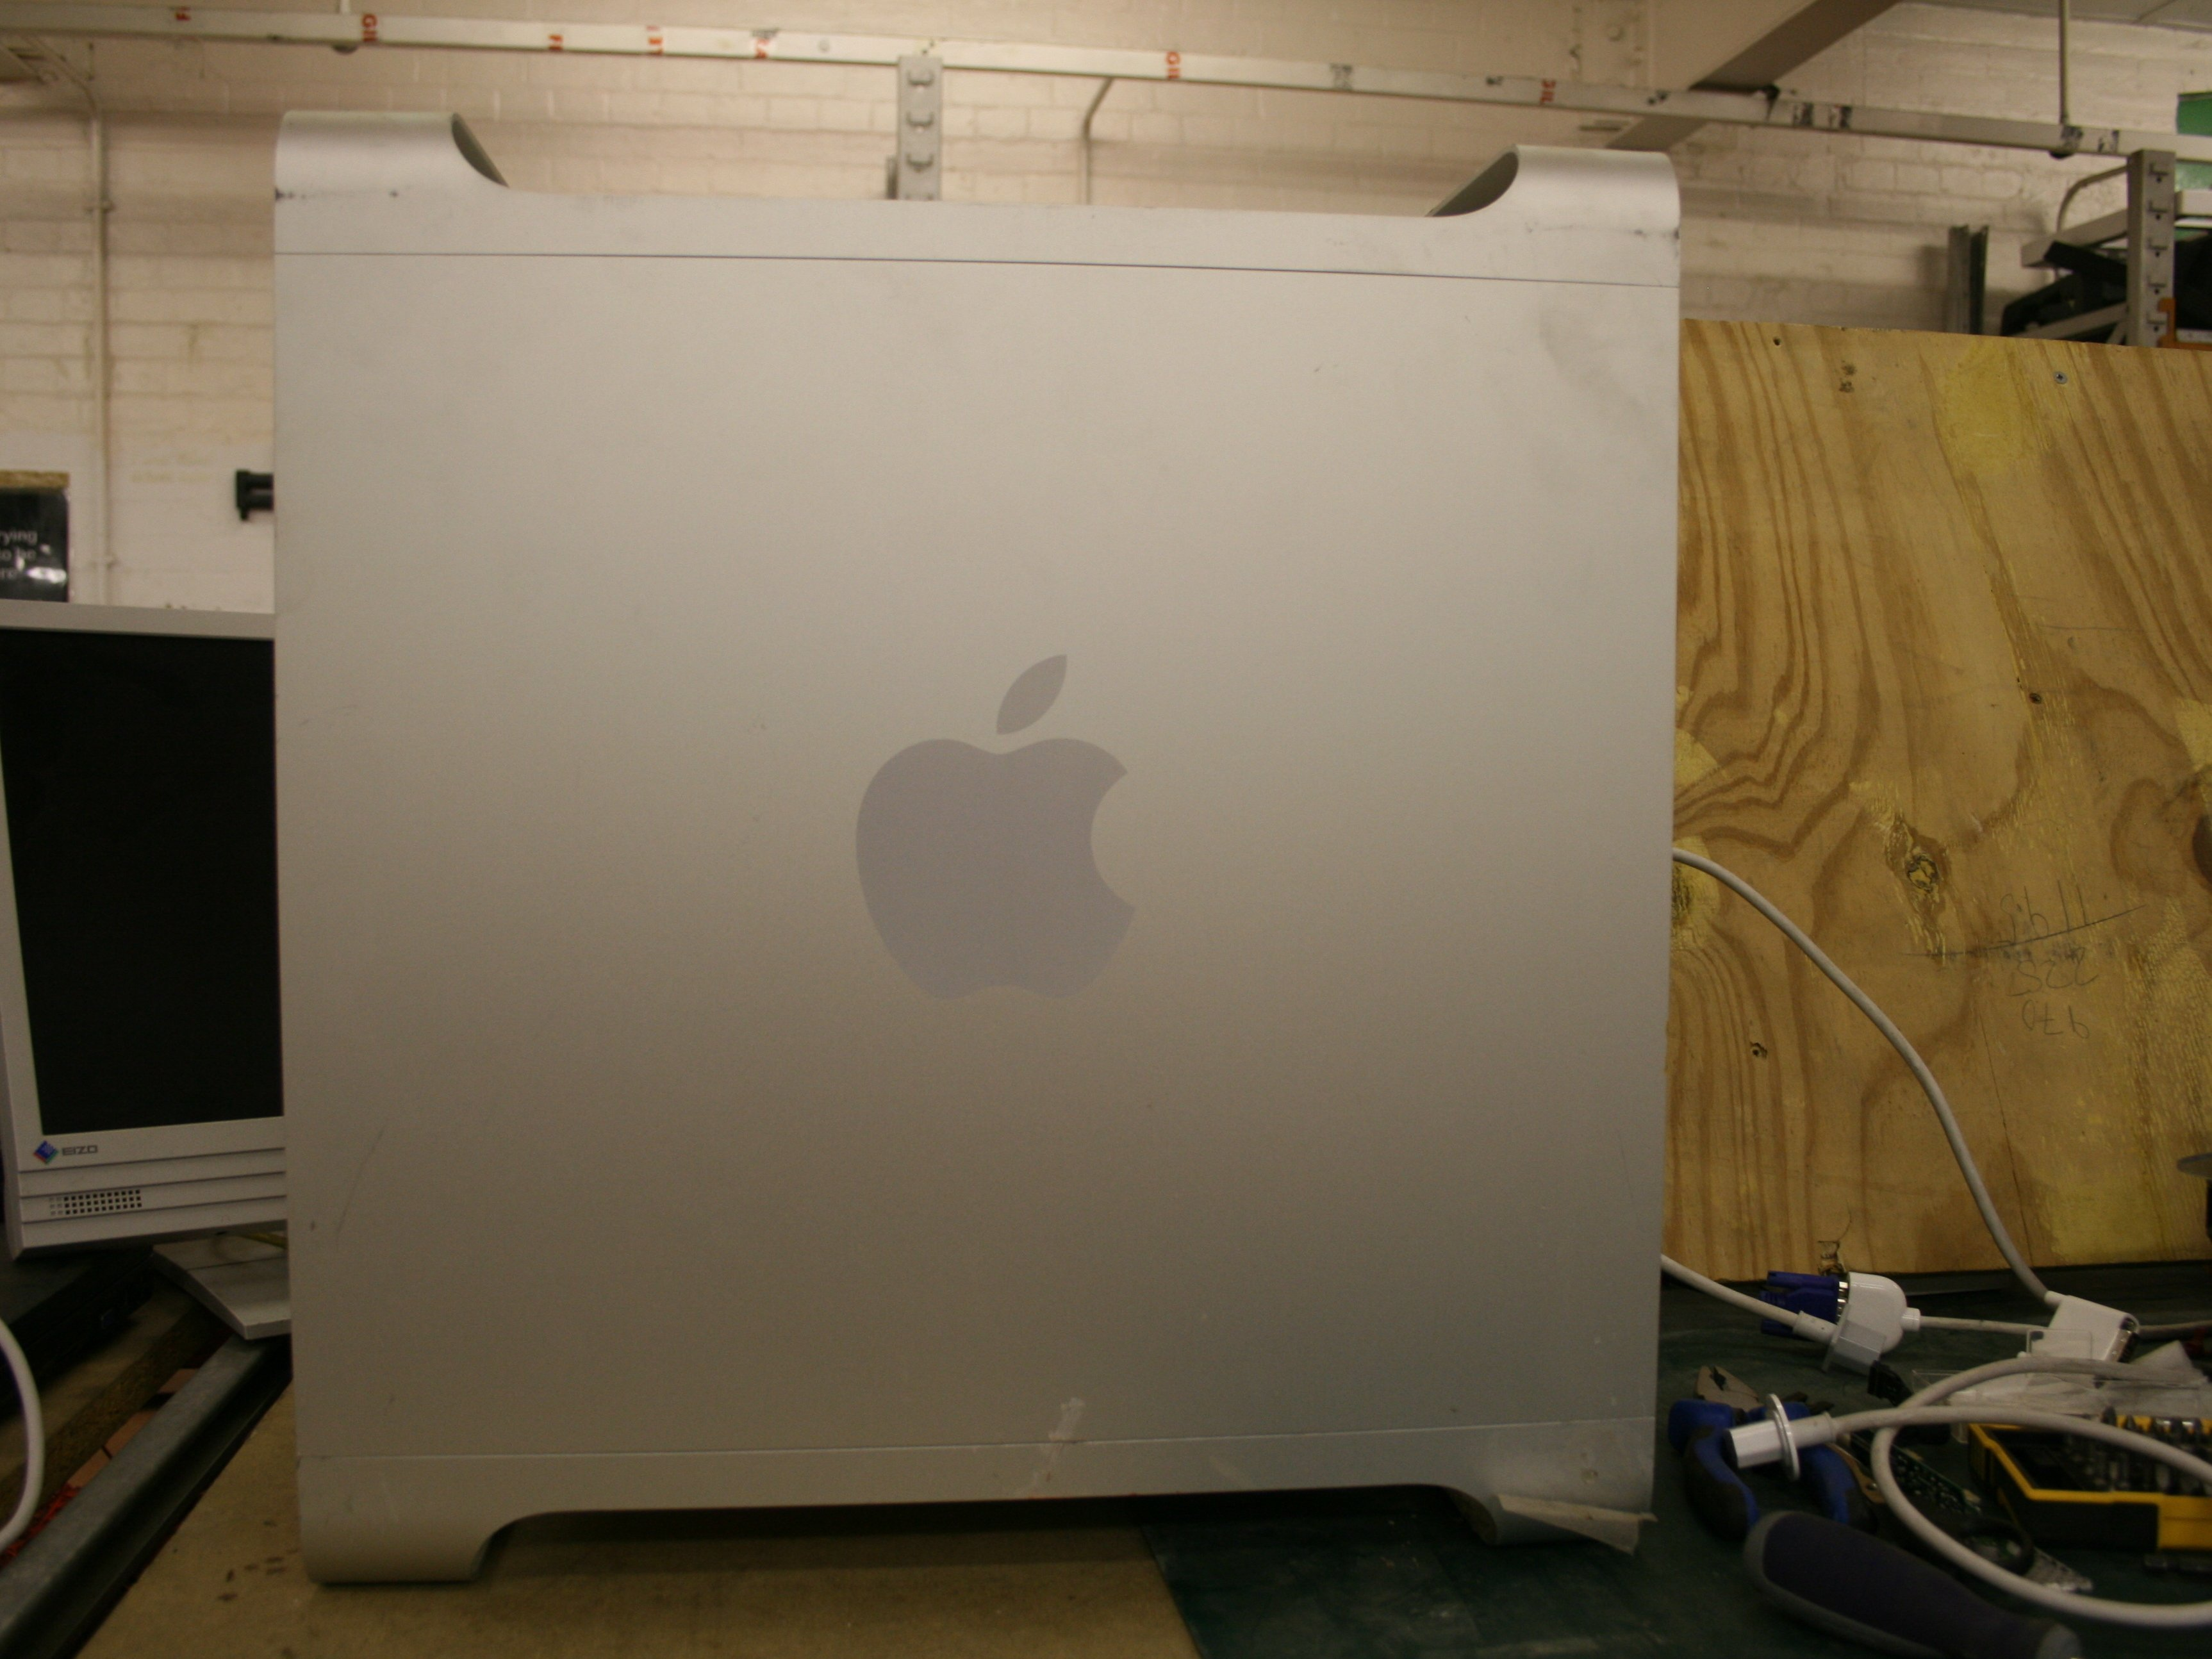 power mac g5 a1047 disassembly